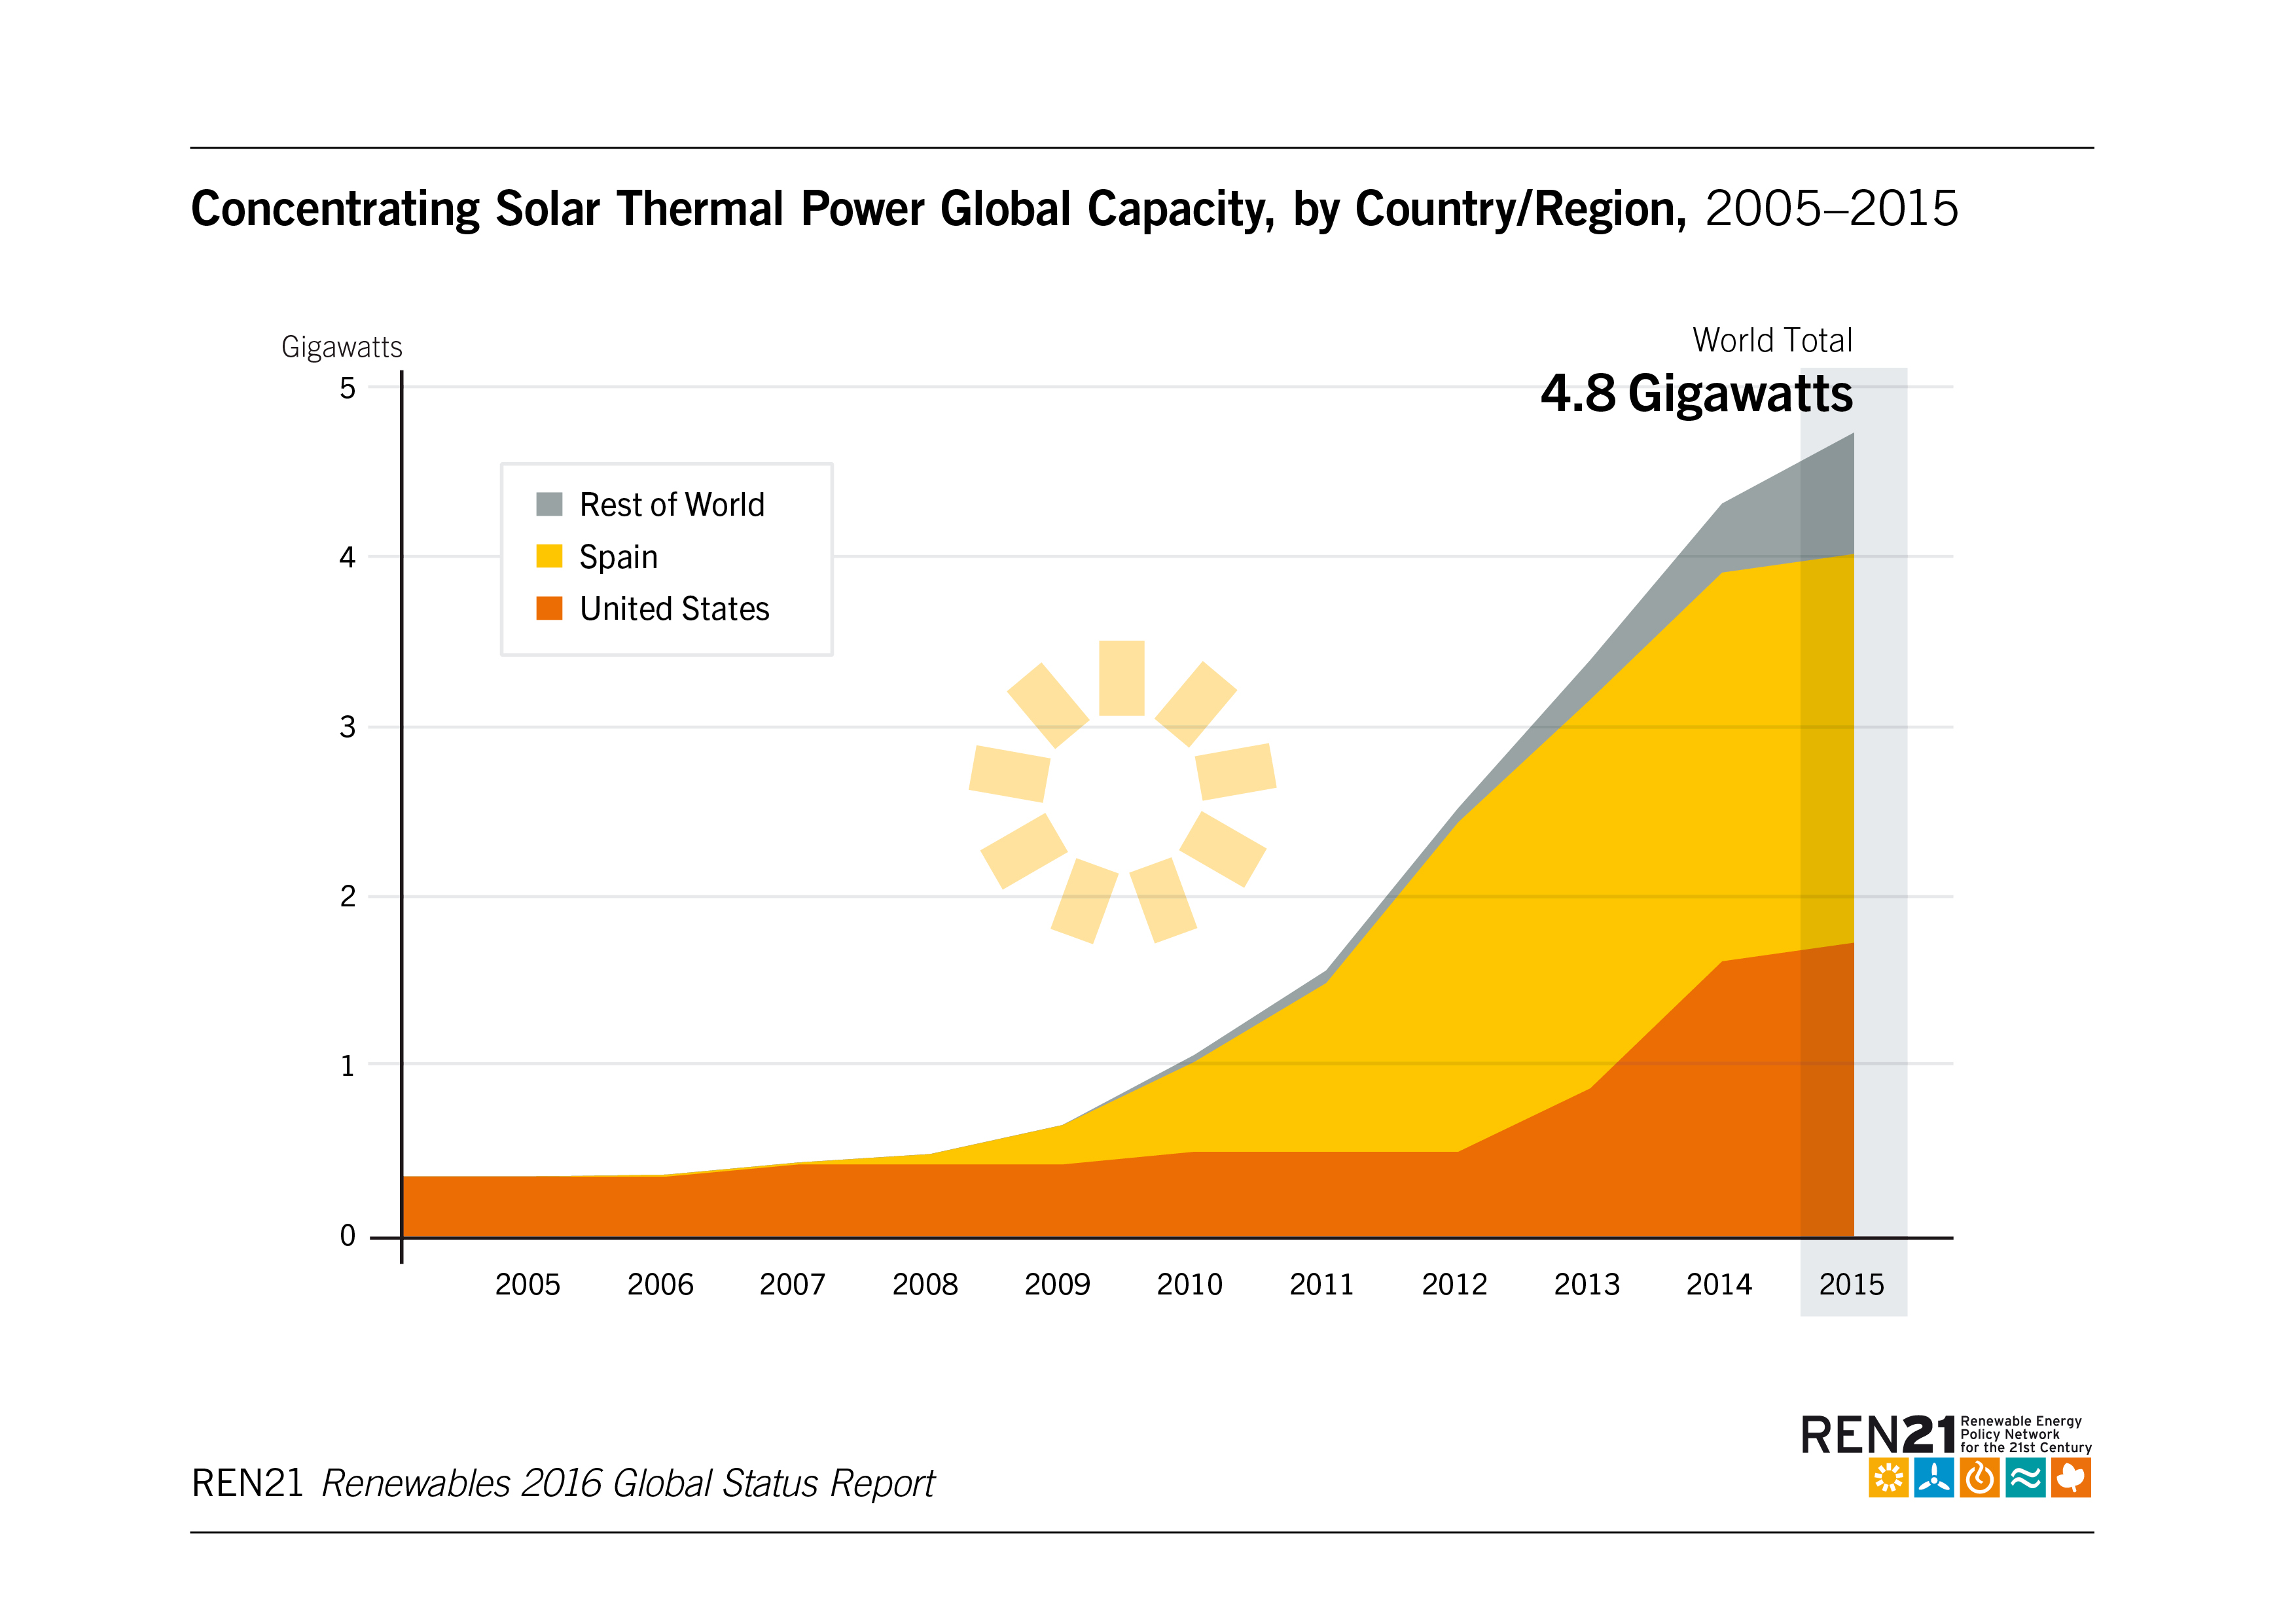 http://www.evwind.com/wp-content/uploads/2016/06/Concentration-Solar-Power-capacity-2005-2015.jpg